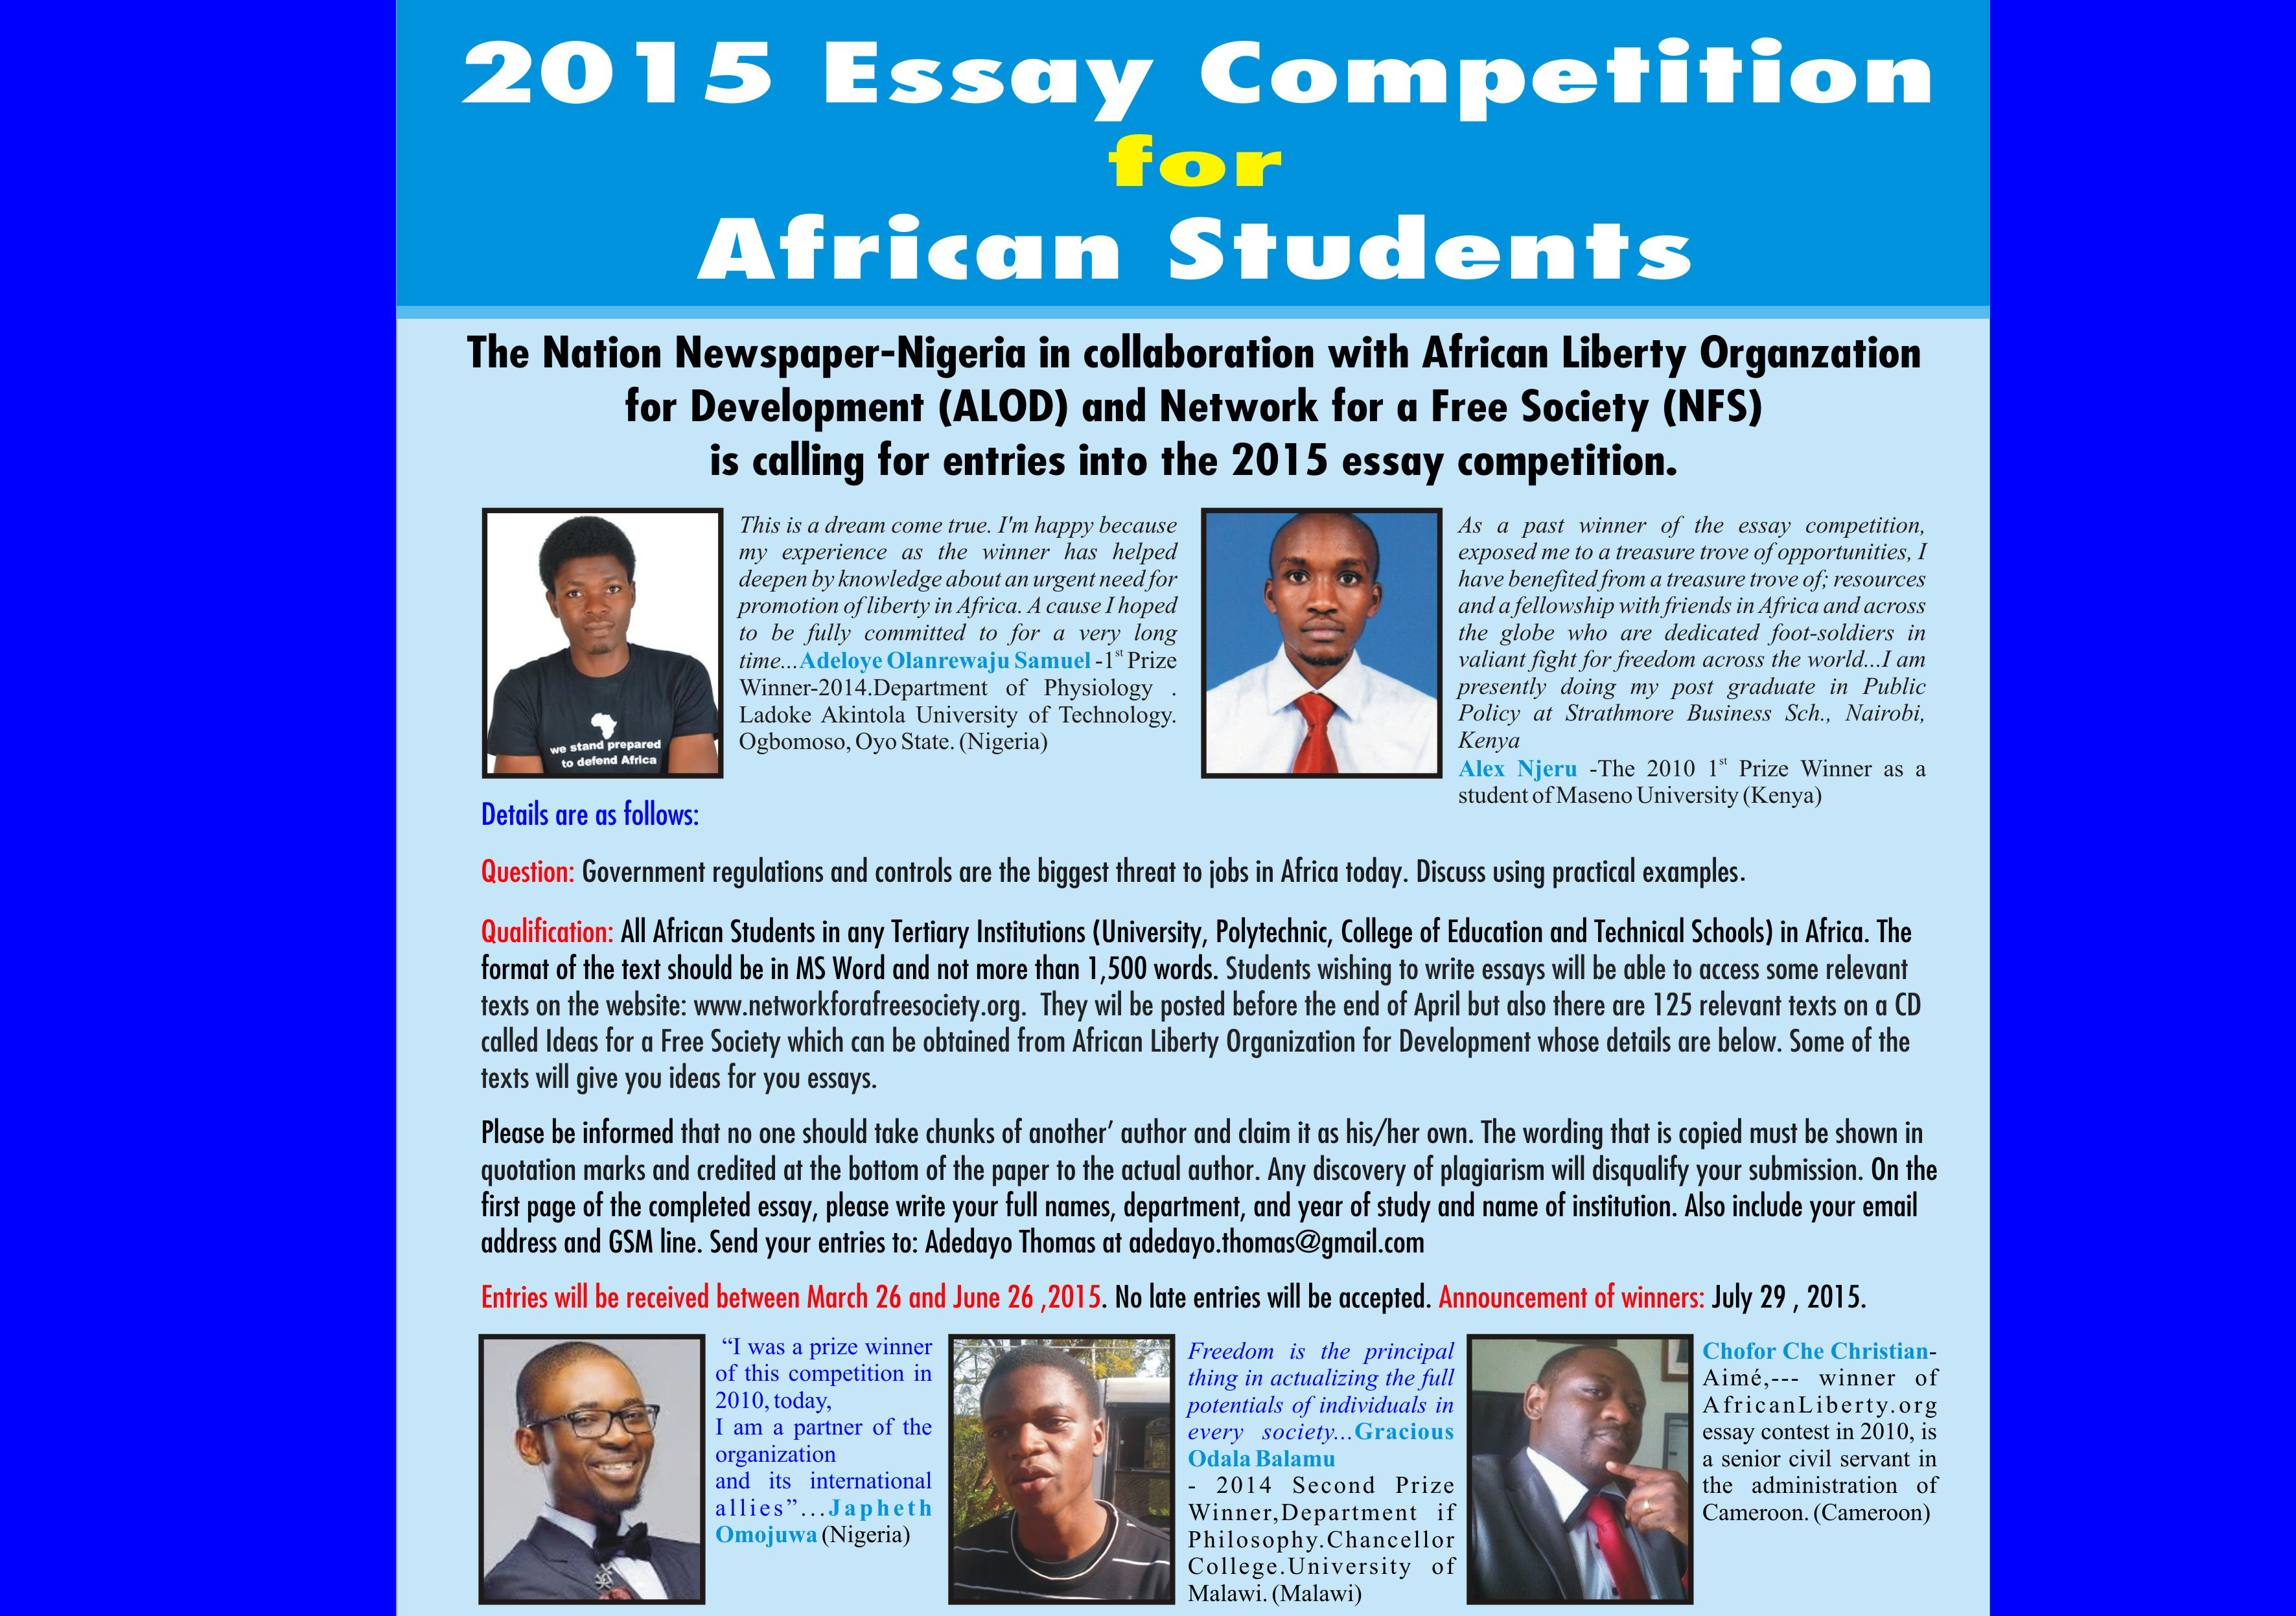 winners of the essay competition for african students winners of the 2015 essay competition for african students network for a society